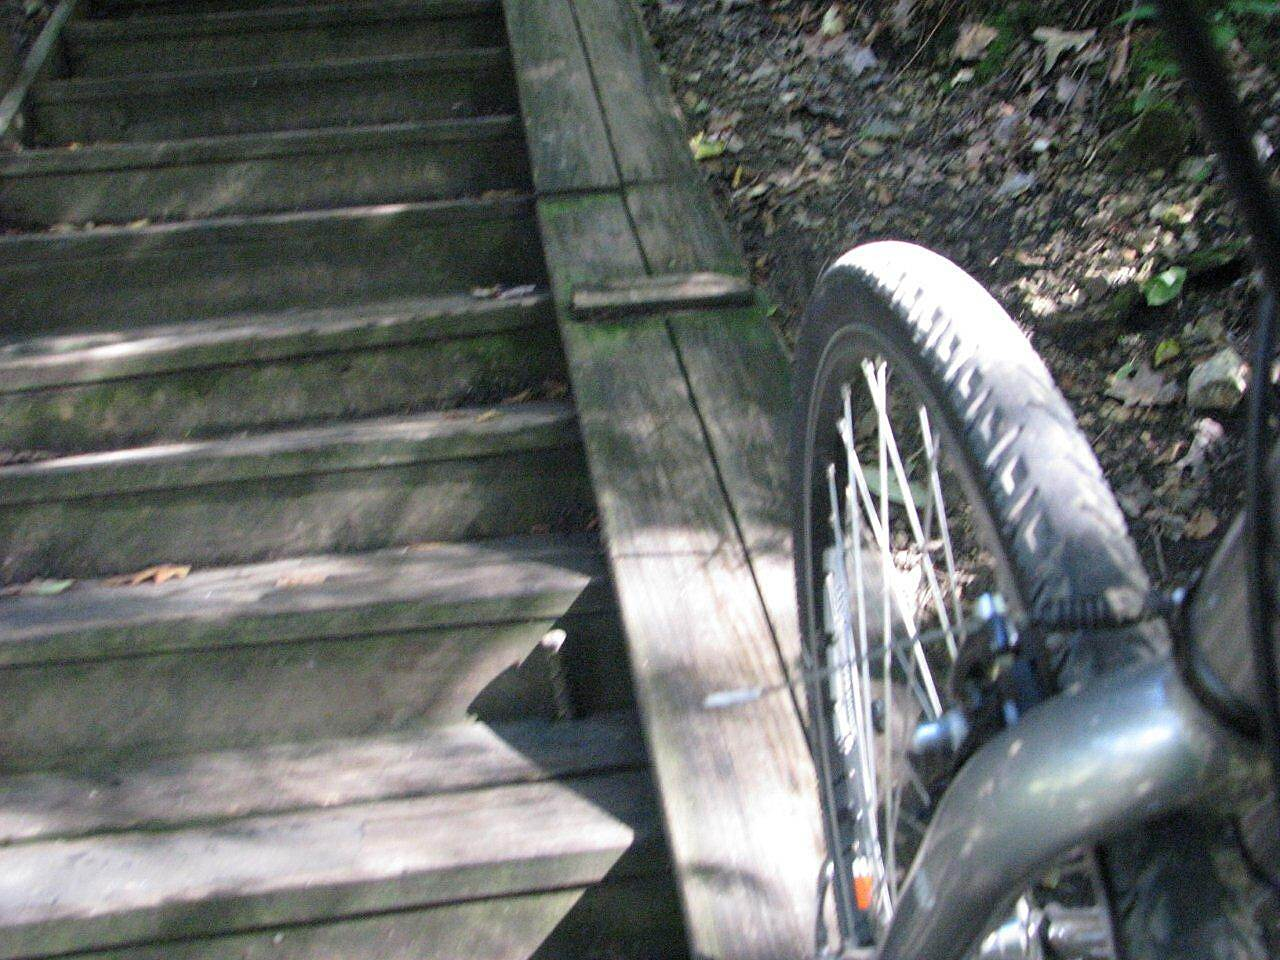 Allegheny River Trail bike steps bike steps from the trail to the bridge